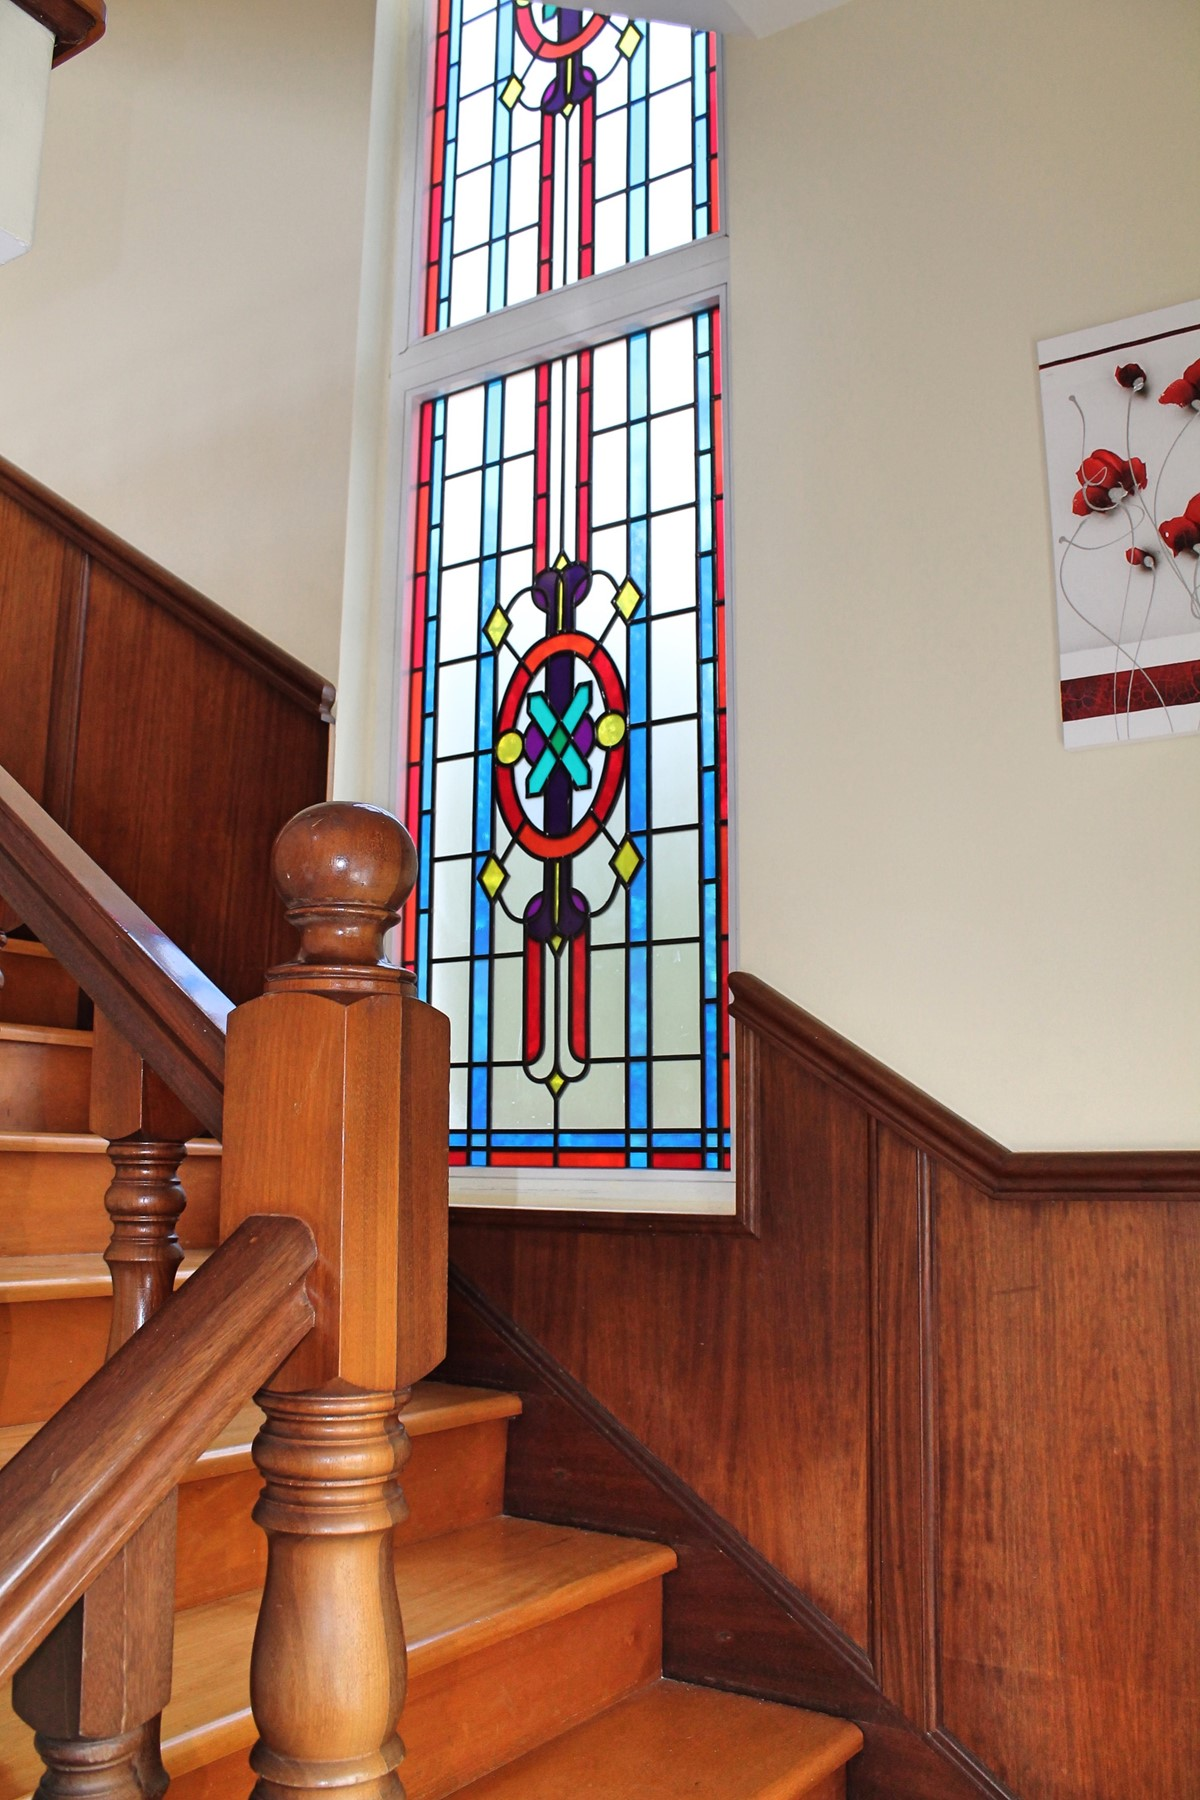 13 MHRD Casa Petronella Stairs And Stained Glass Windows